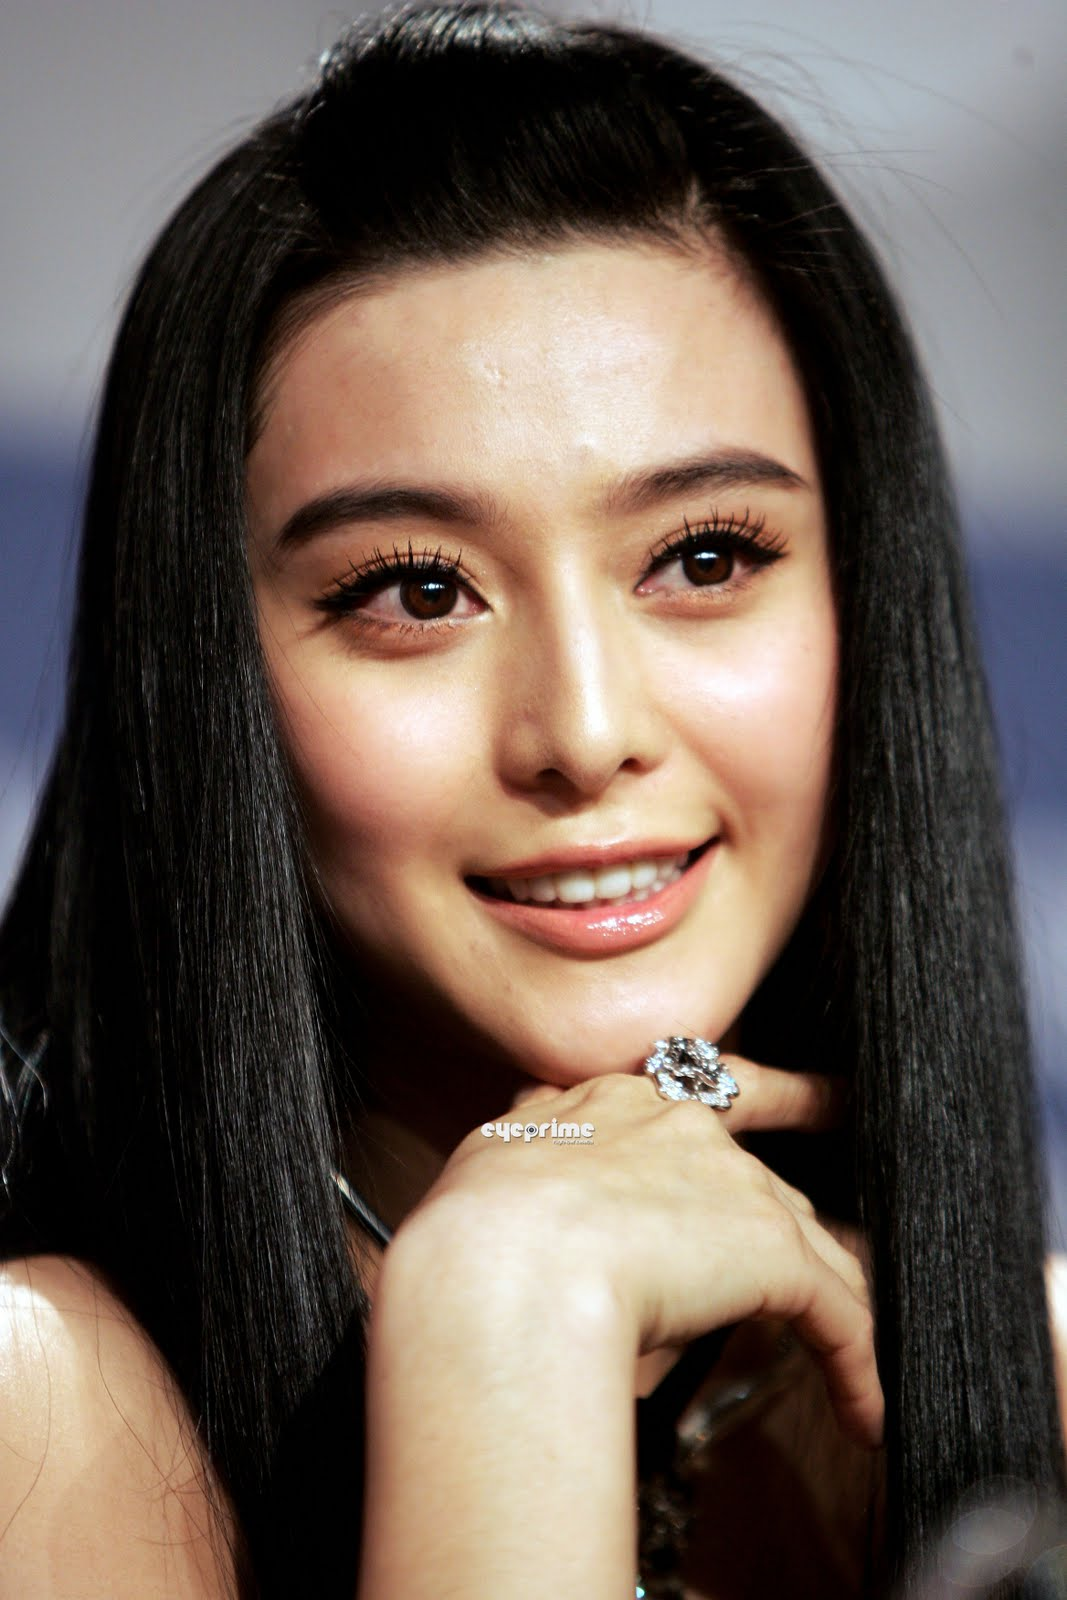 Www Bing Comgo To Www Bing Com: Wallpaper World: Fan Bing Bing Sexy Image By Berlinale